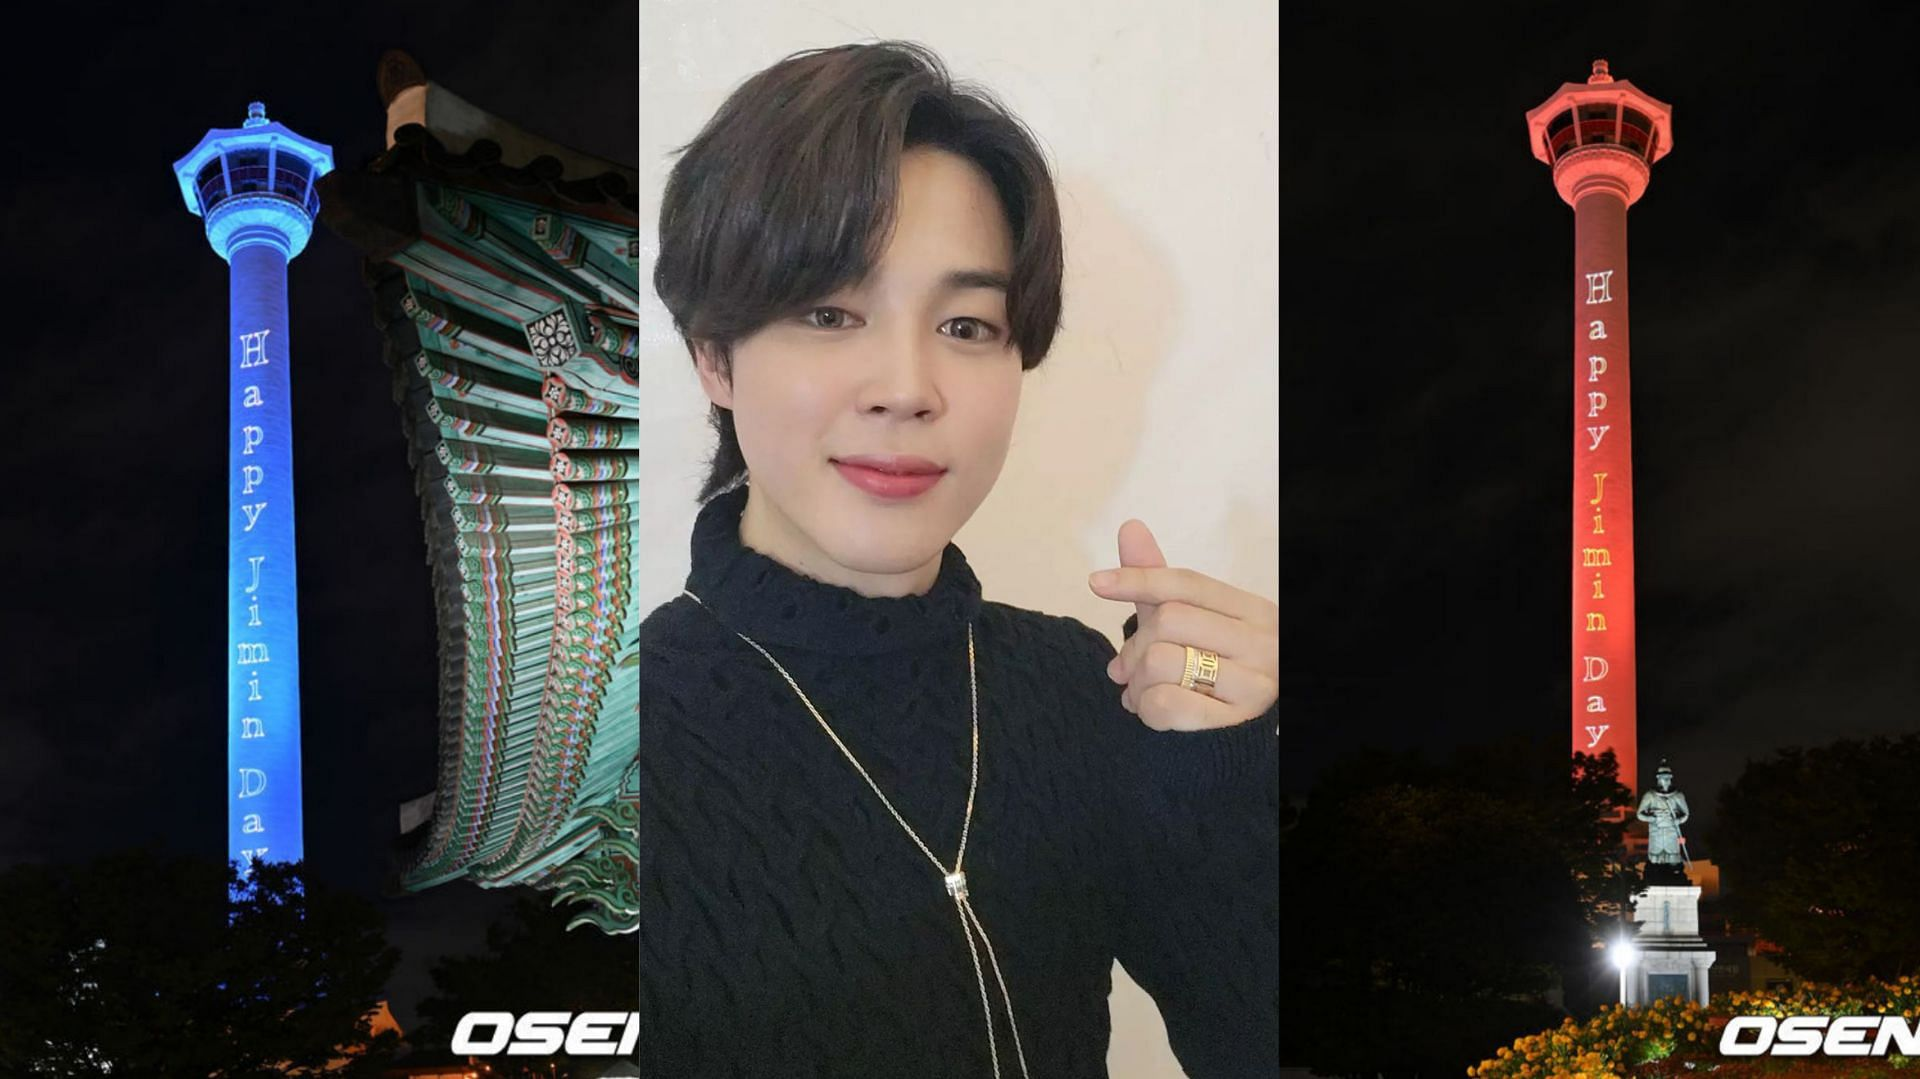 BTS' Jimin became the first person in the world to get a thematic projection show on Busan tower. (Image via Twitter)